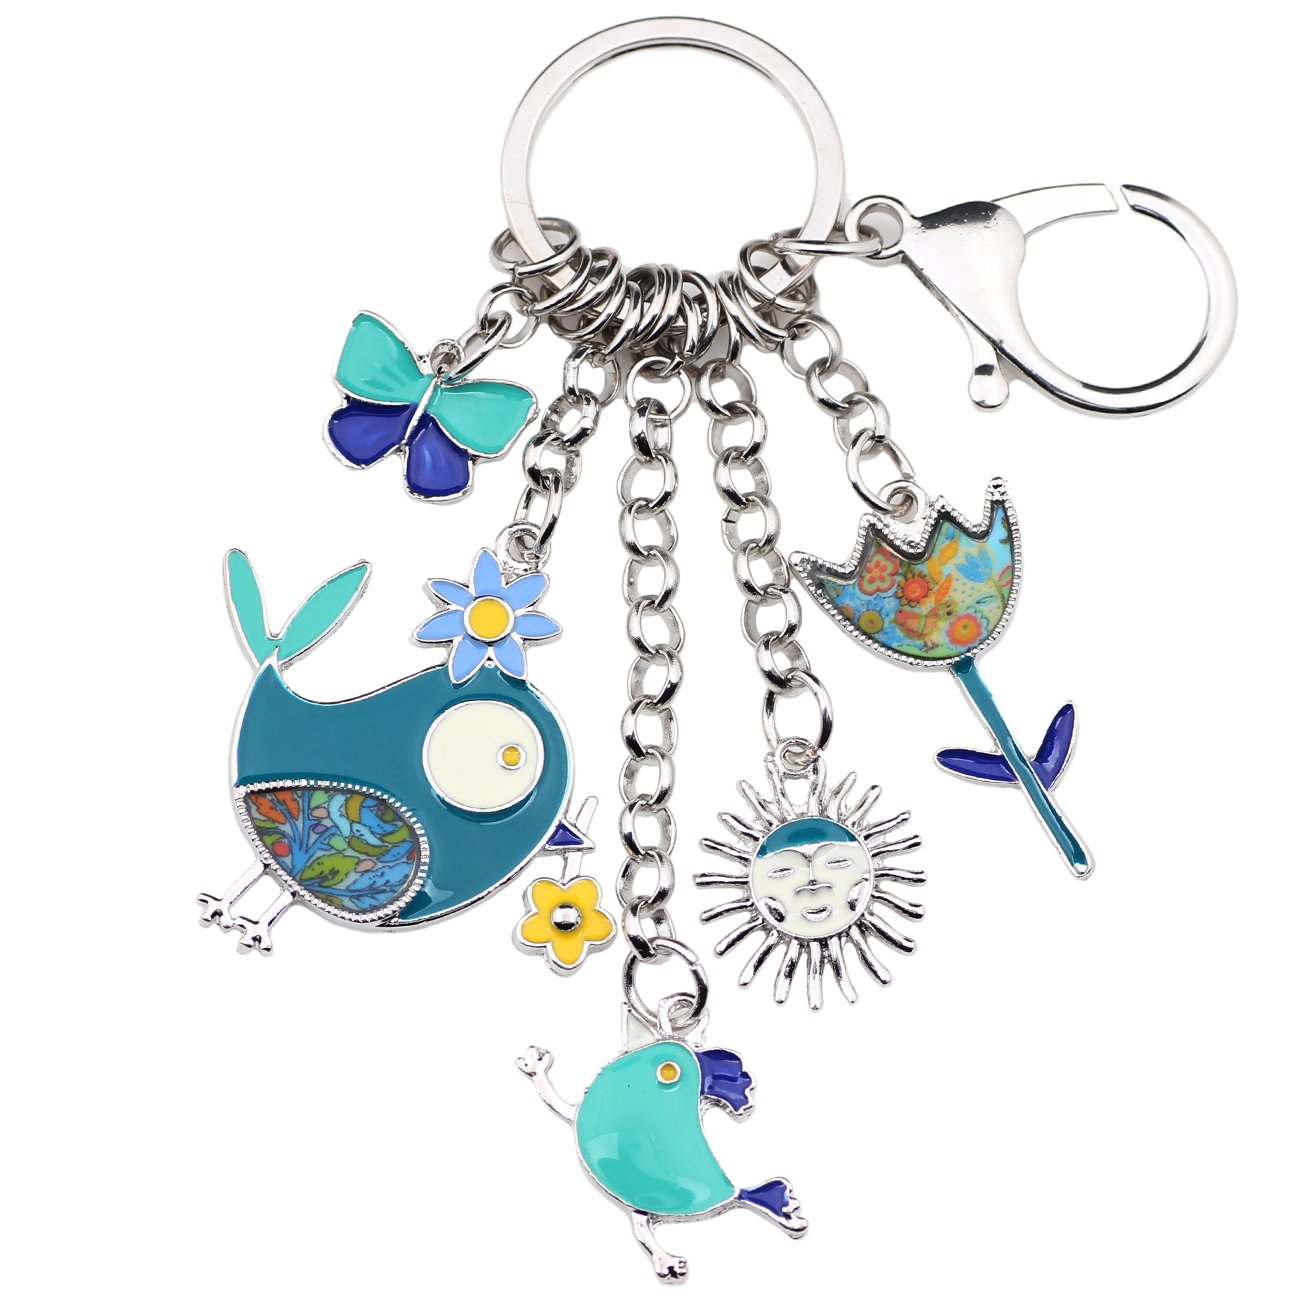 Bonsny Enamel Zinc Alloy Birds Flower Butterfly Key Chains Keyrings For Women Handbag Car Key Charms (Blue)